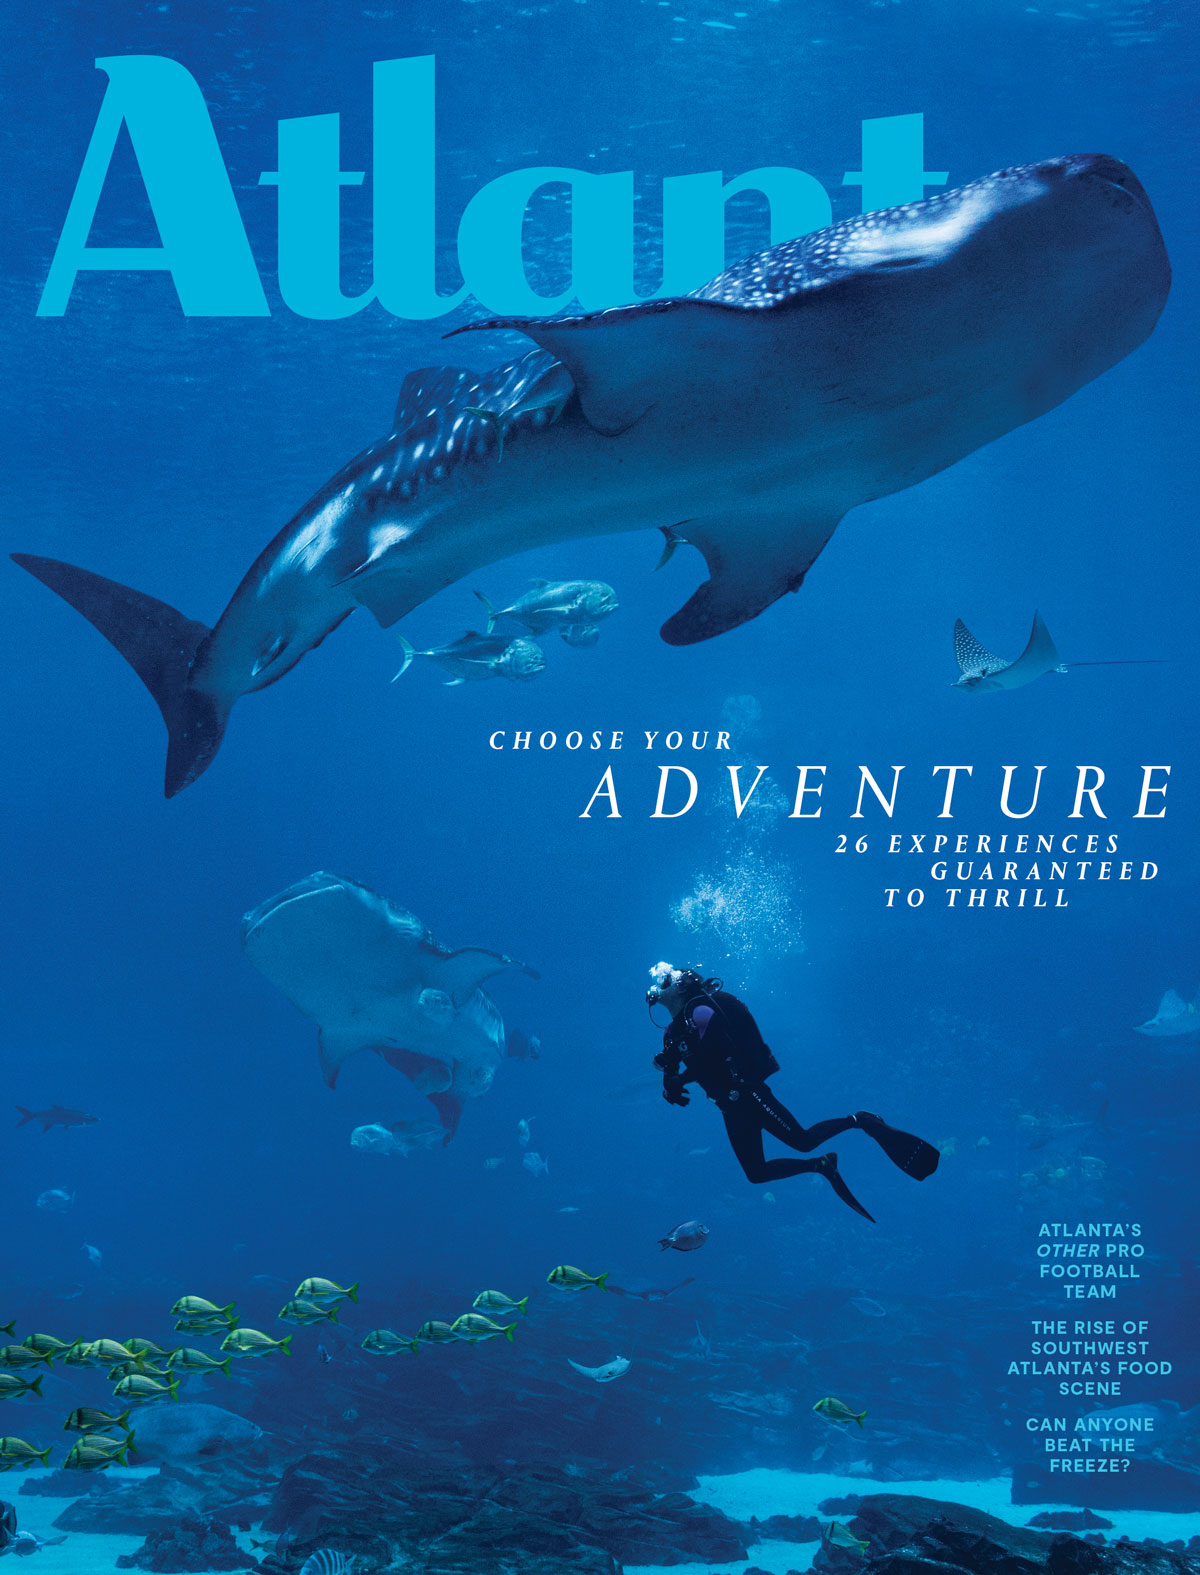 Atlanta Magazine April 2019 cover - Choose your adventure - Georgia Aquarium